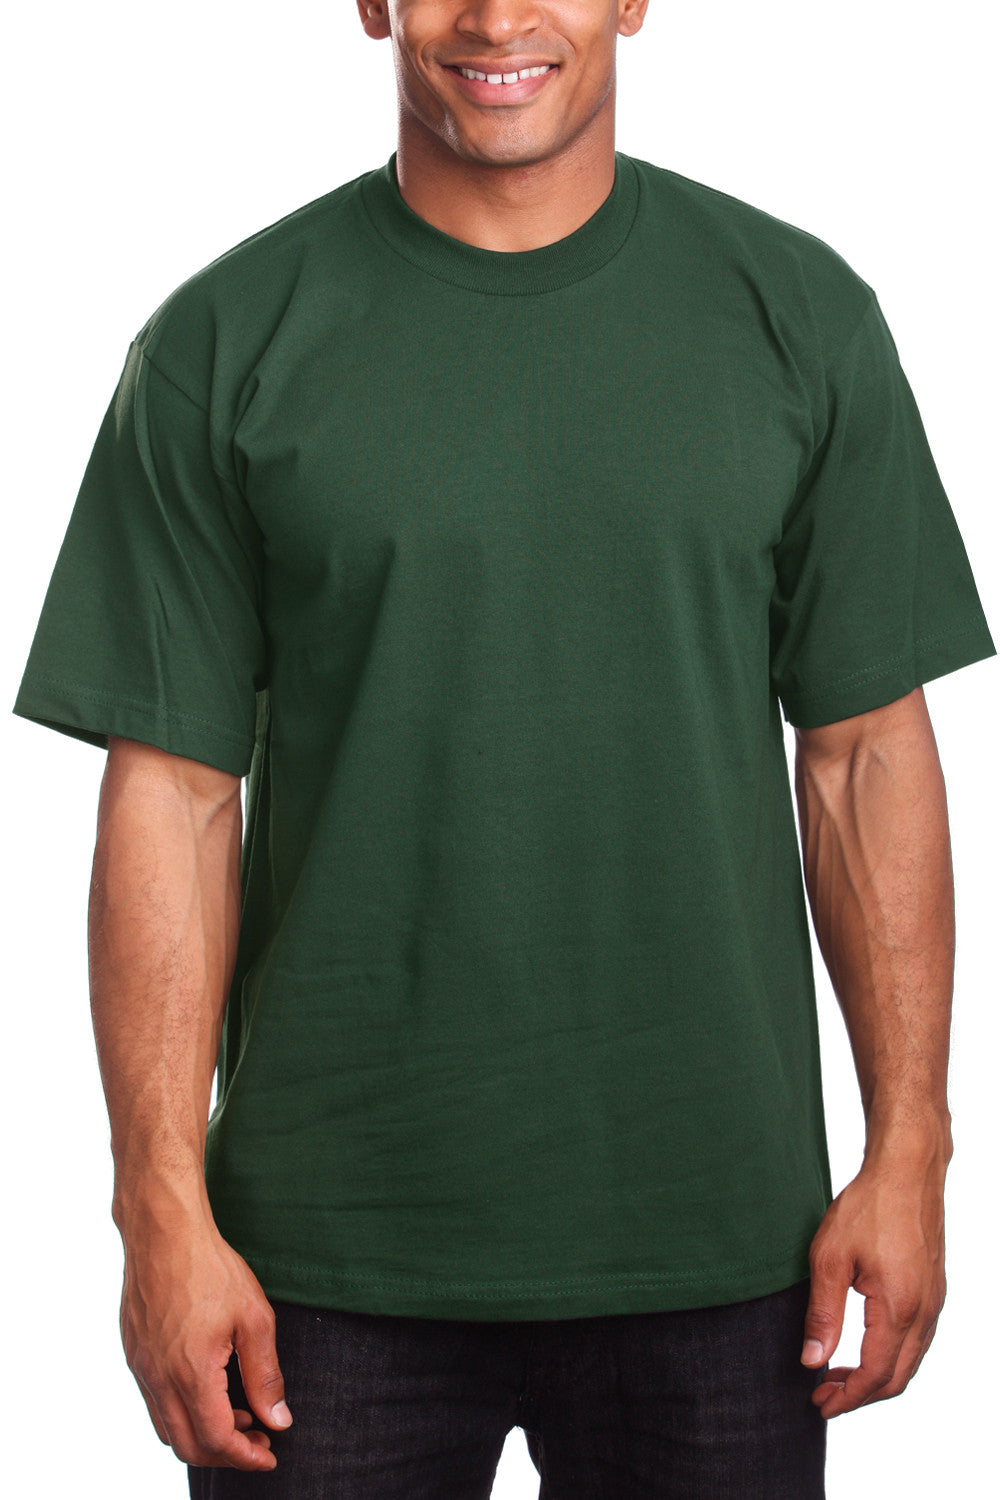 Athletic Fit Dark Green T-Shirts Activewear Tee Shirts